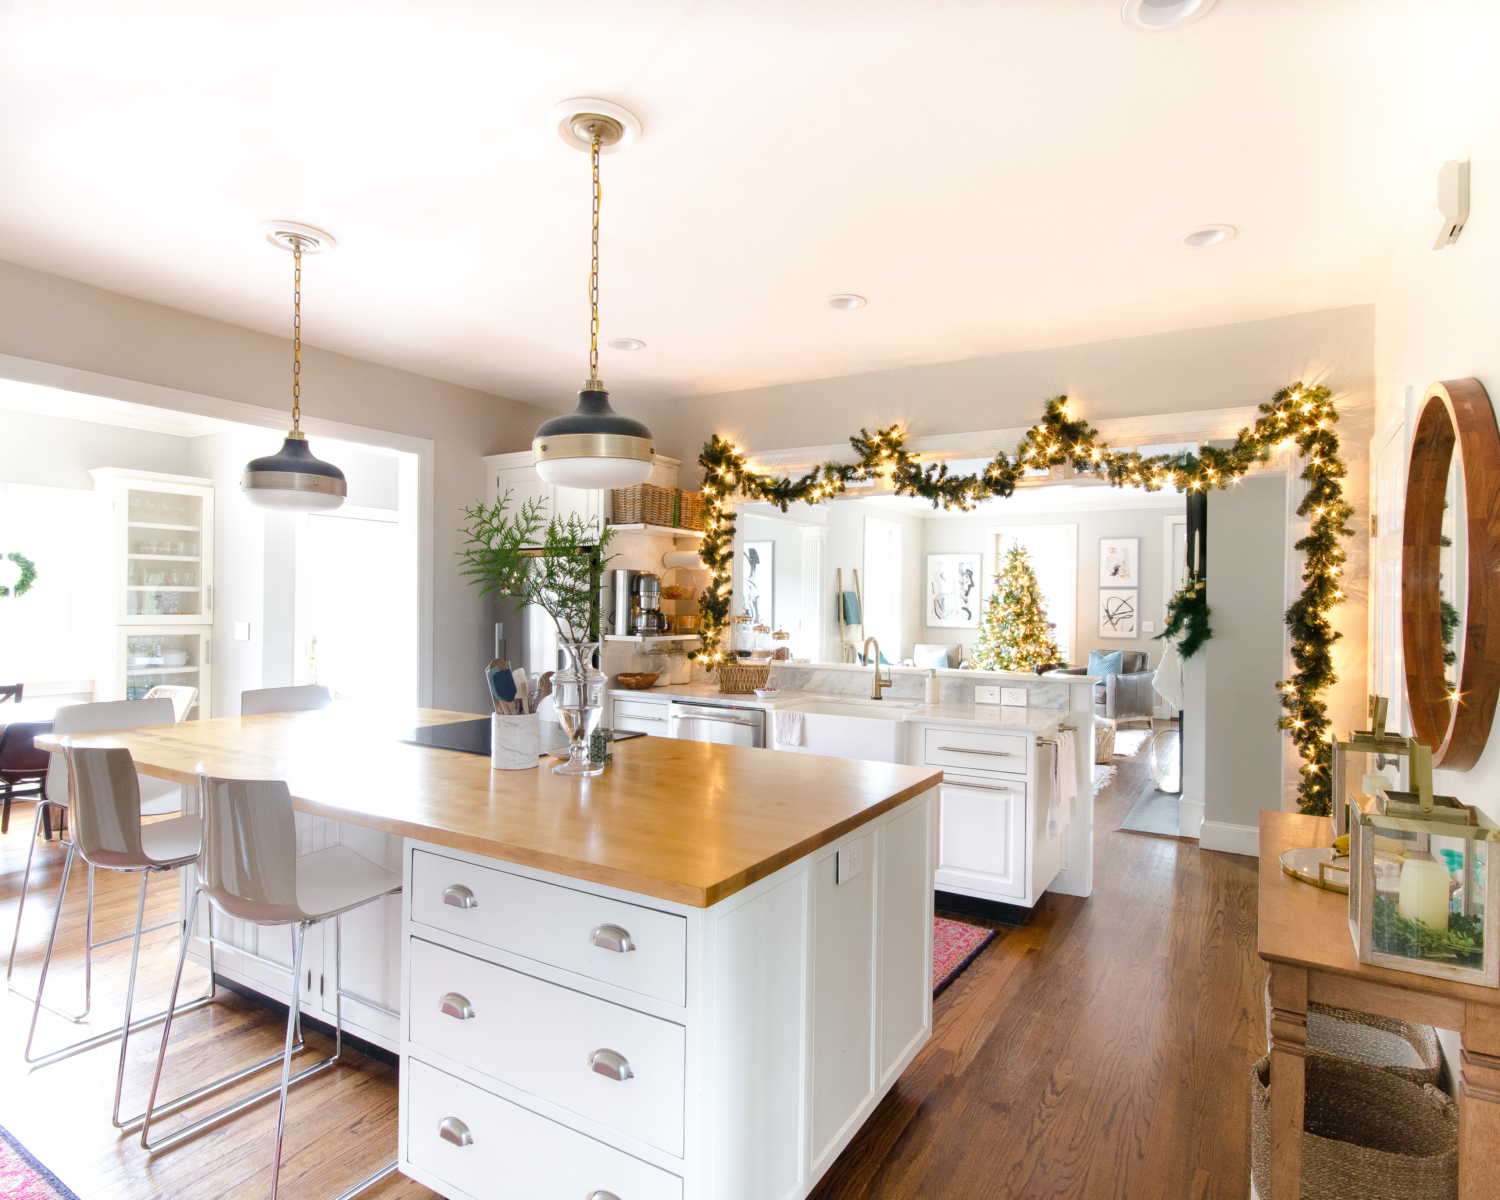 A simple and beautiful classic Christmas kitchen